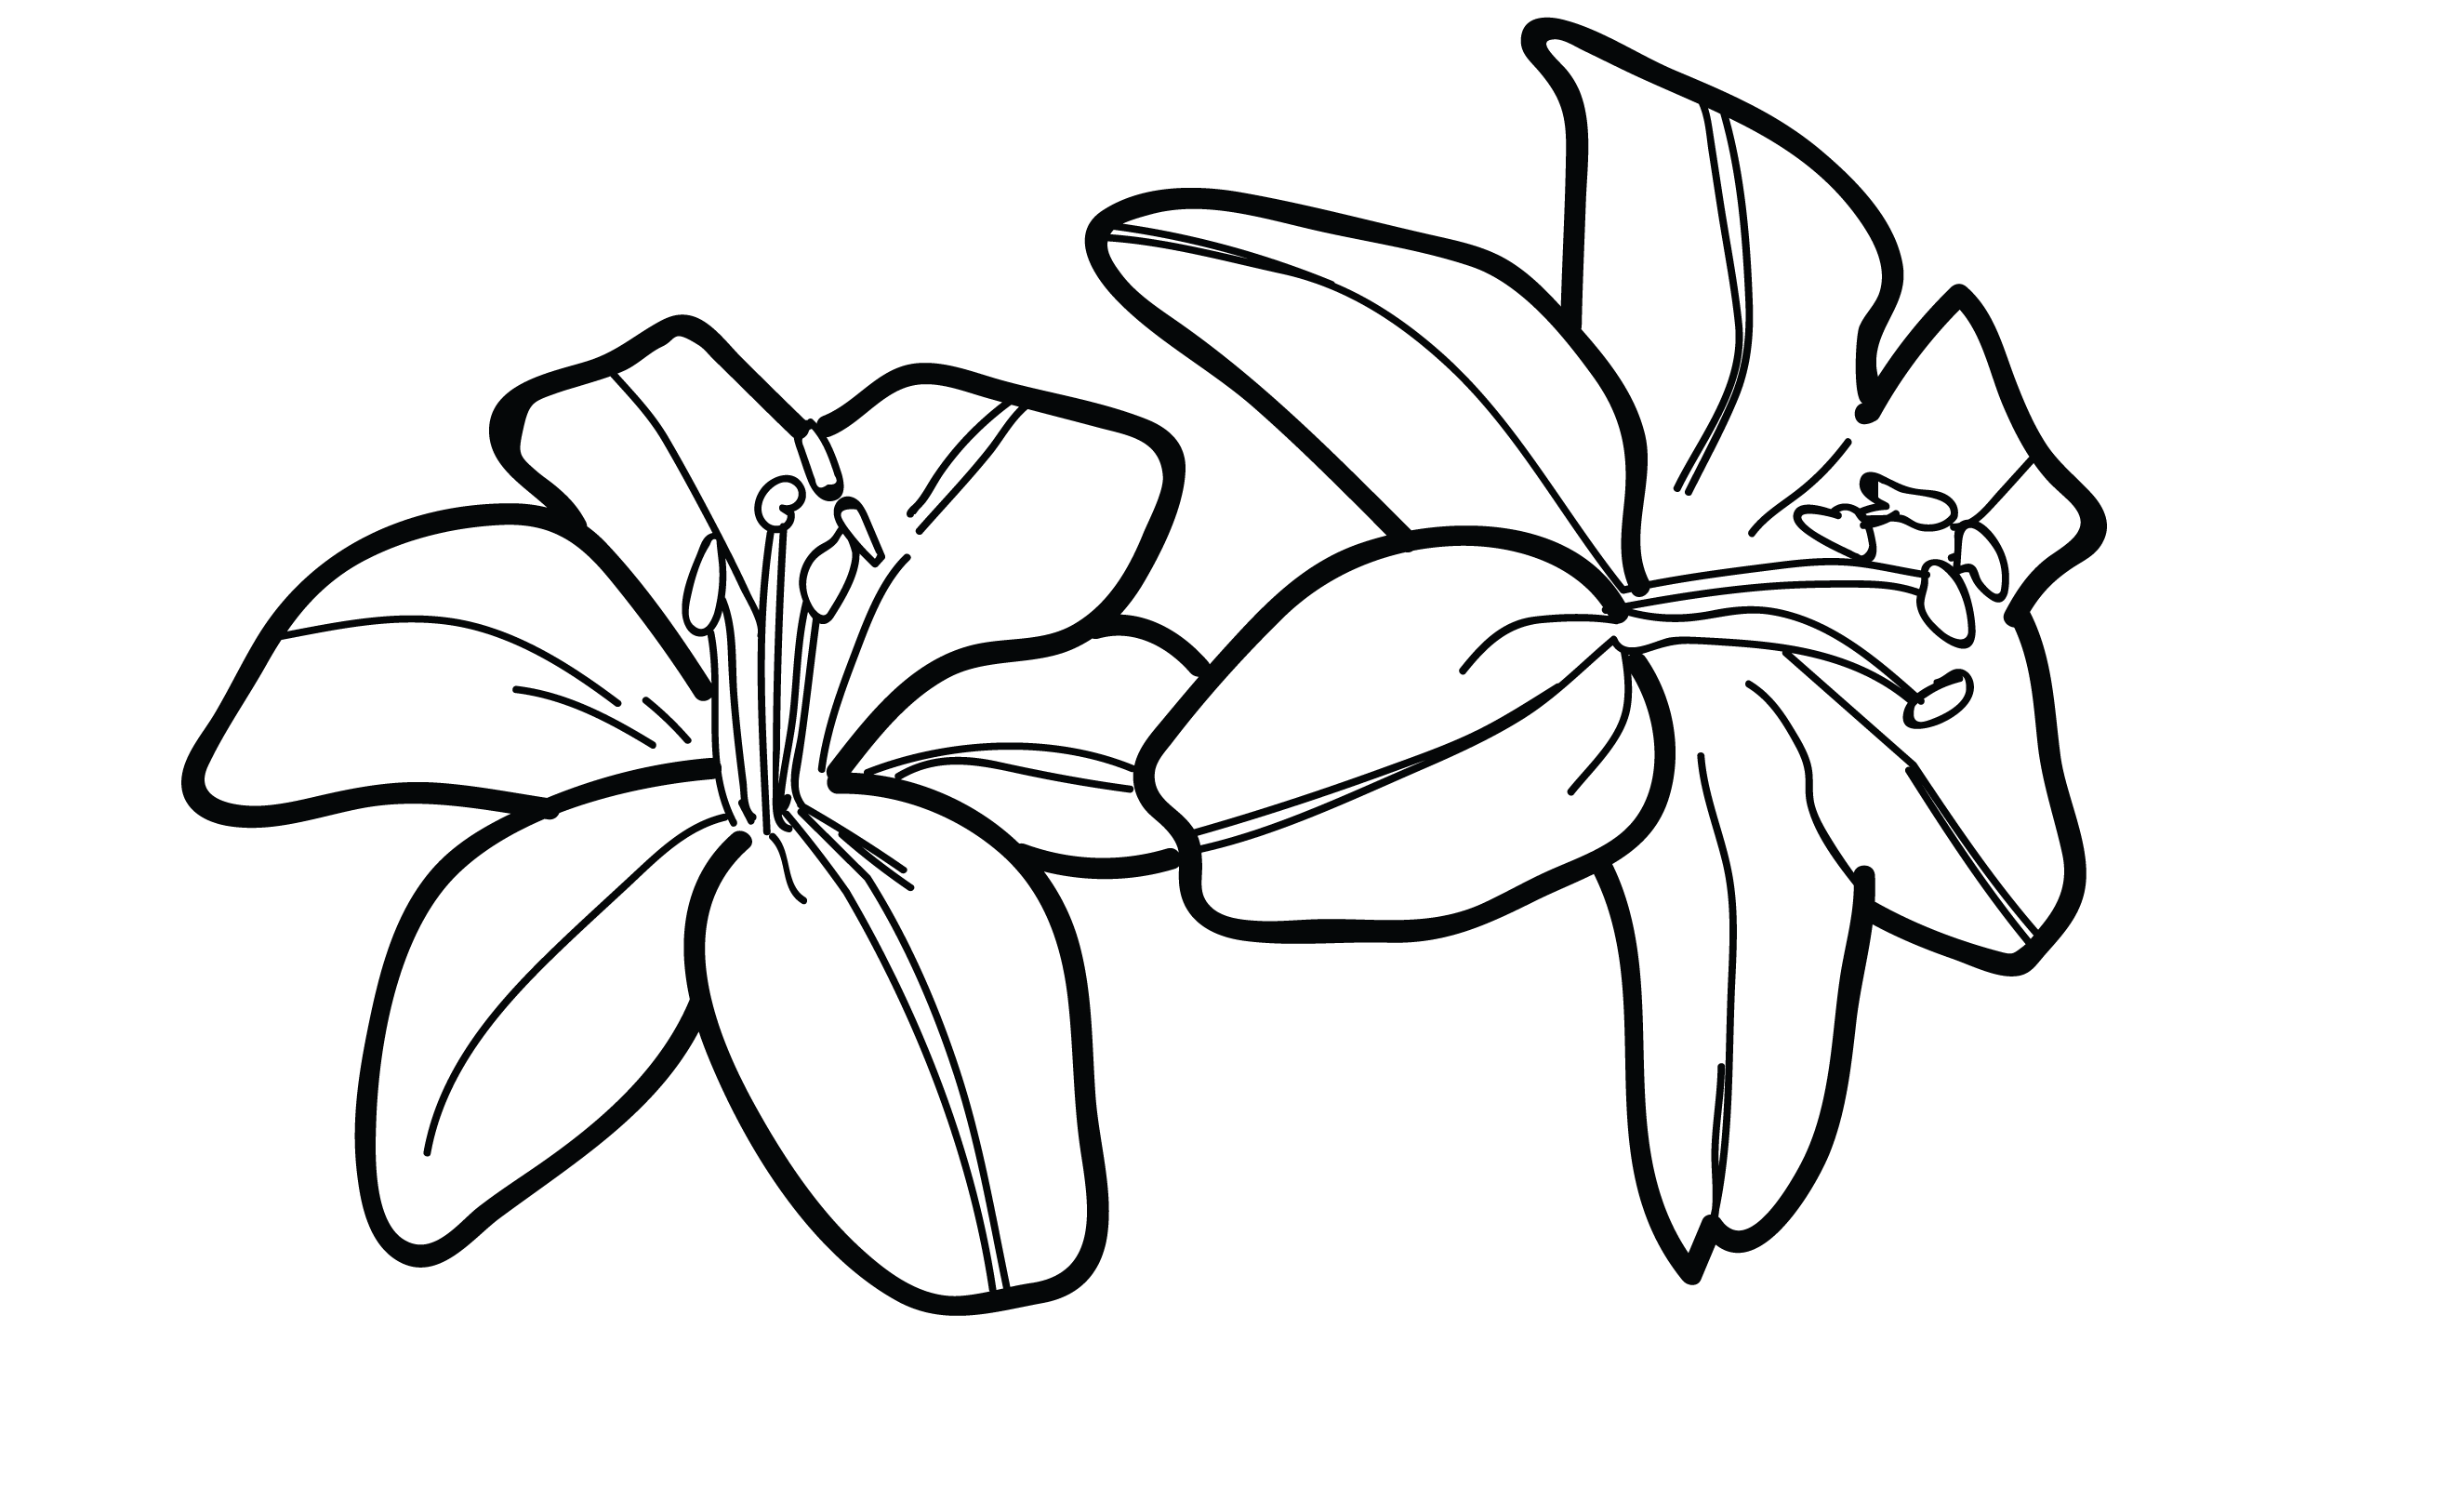 lily flower drawing simple lily drawing at getdrawings free download lily flower drawing